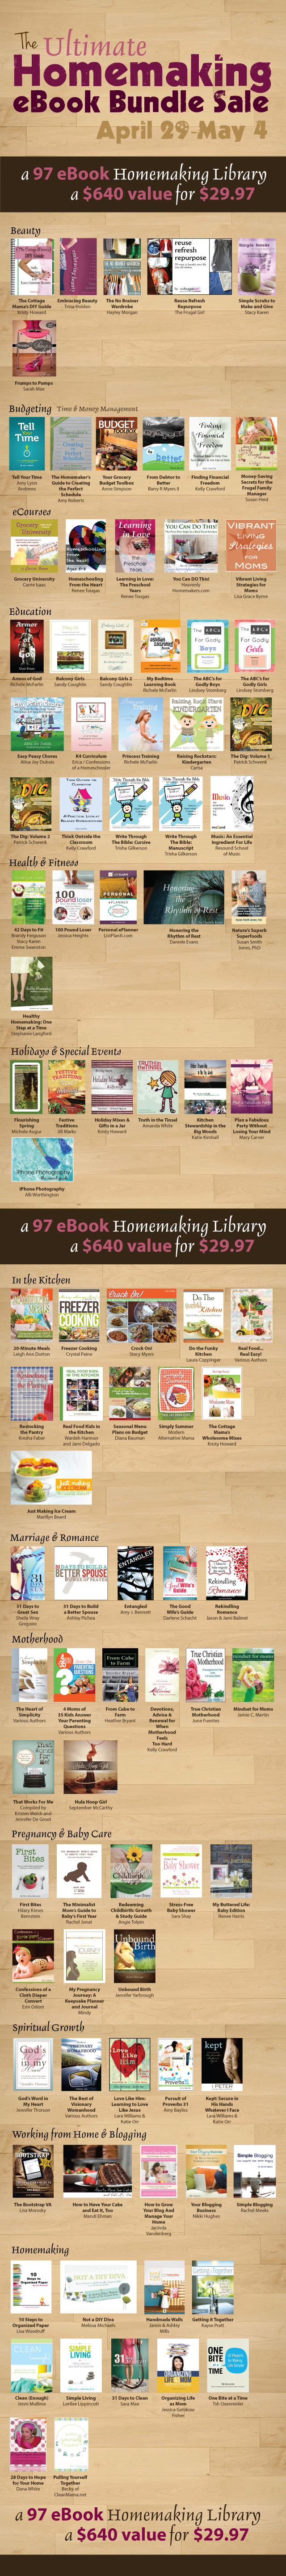 The Ultimate Homemaking Ebook Bundle Sale!